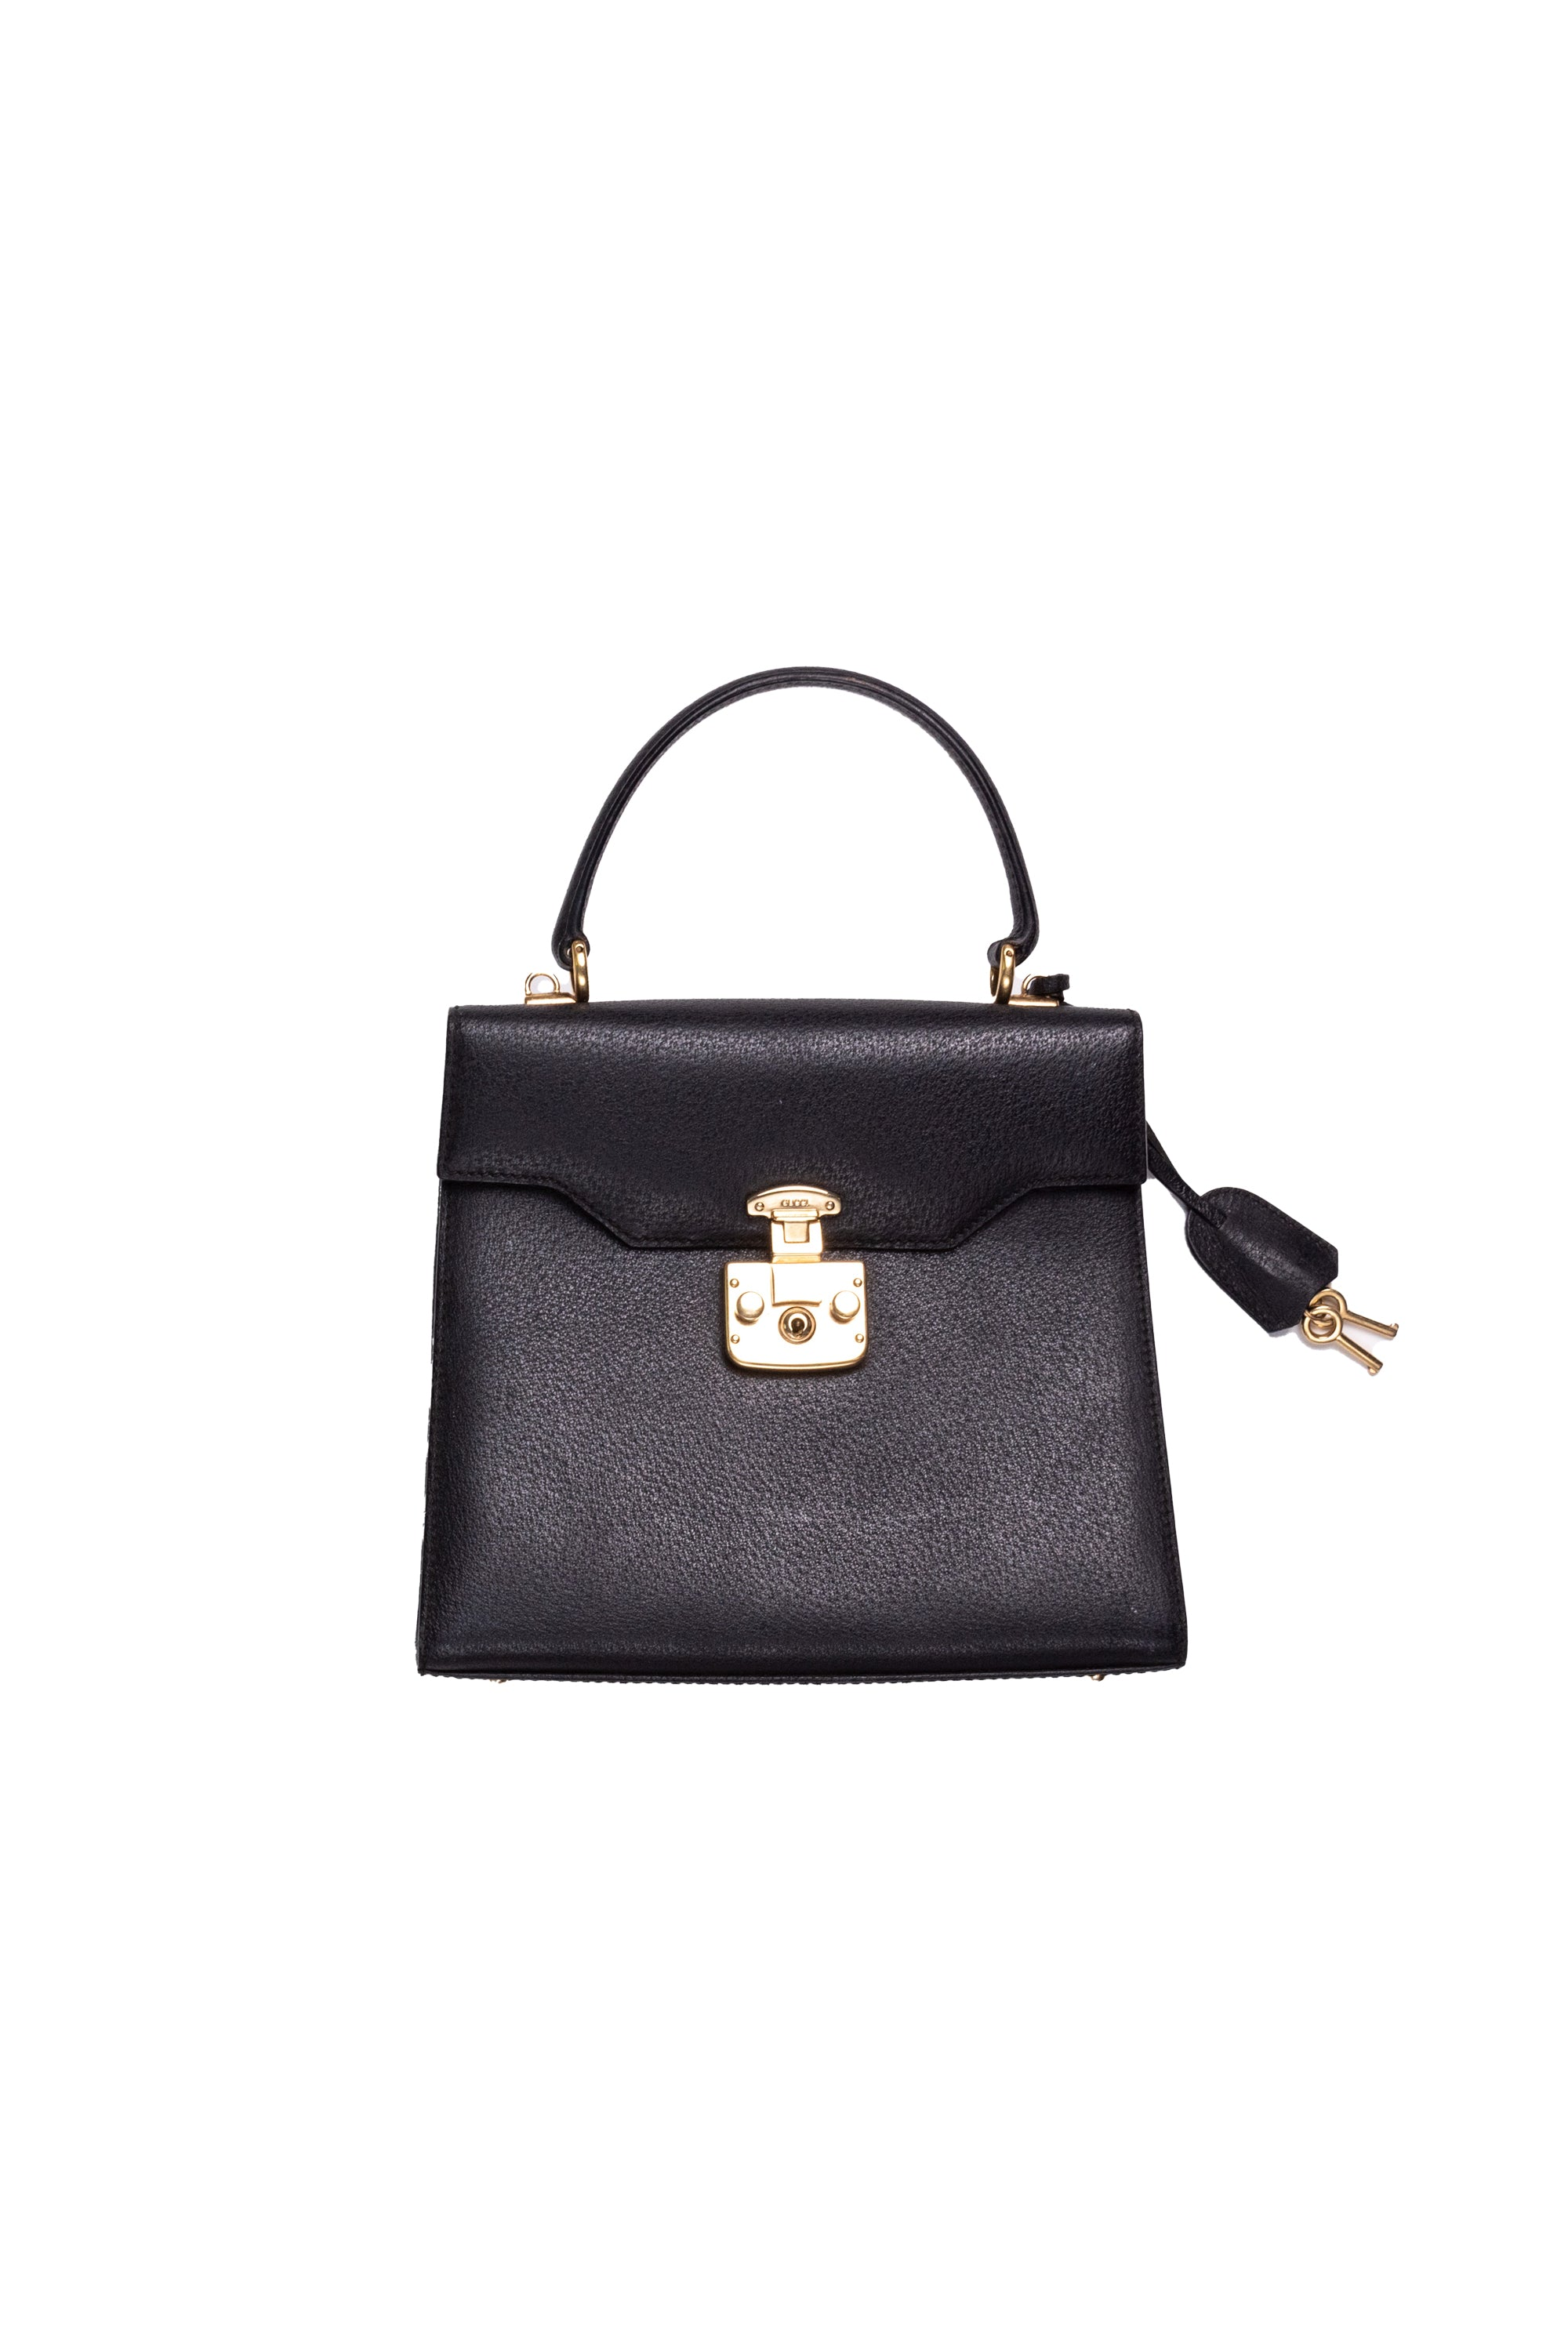 Gucci <br> 90's Gucci by Tom Ford leather Kelly bag